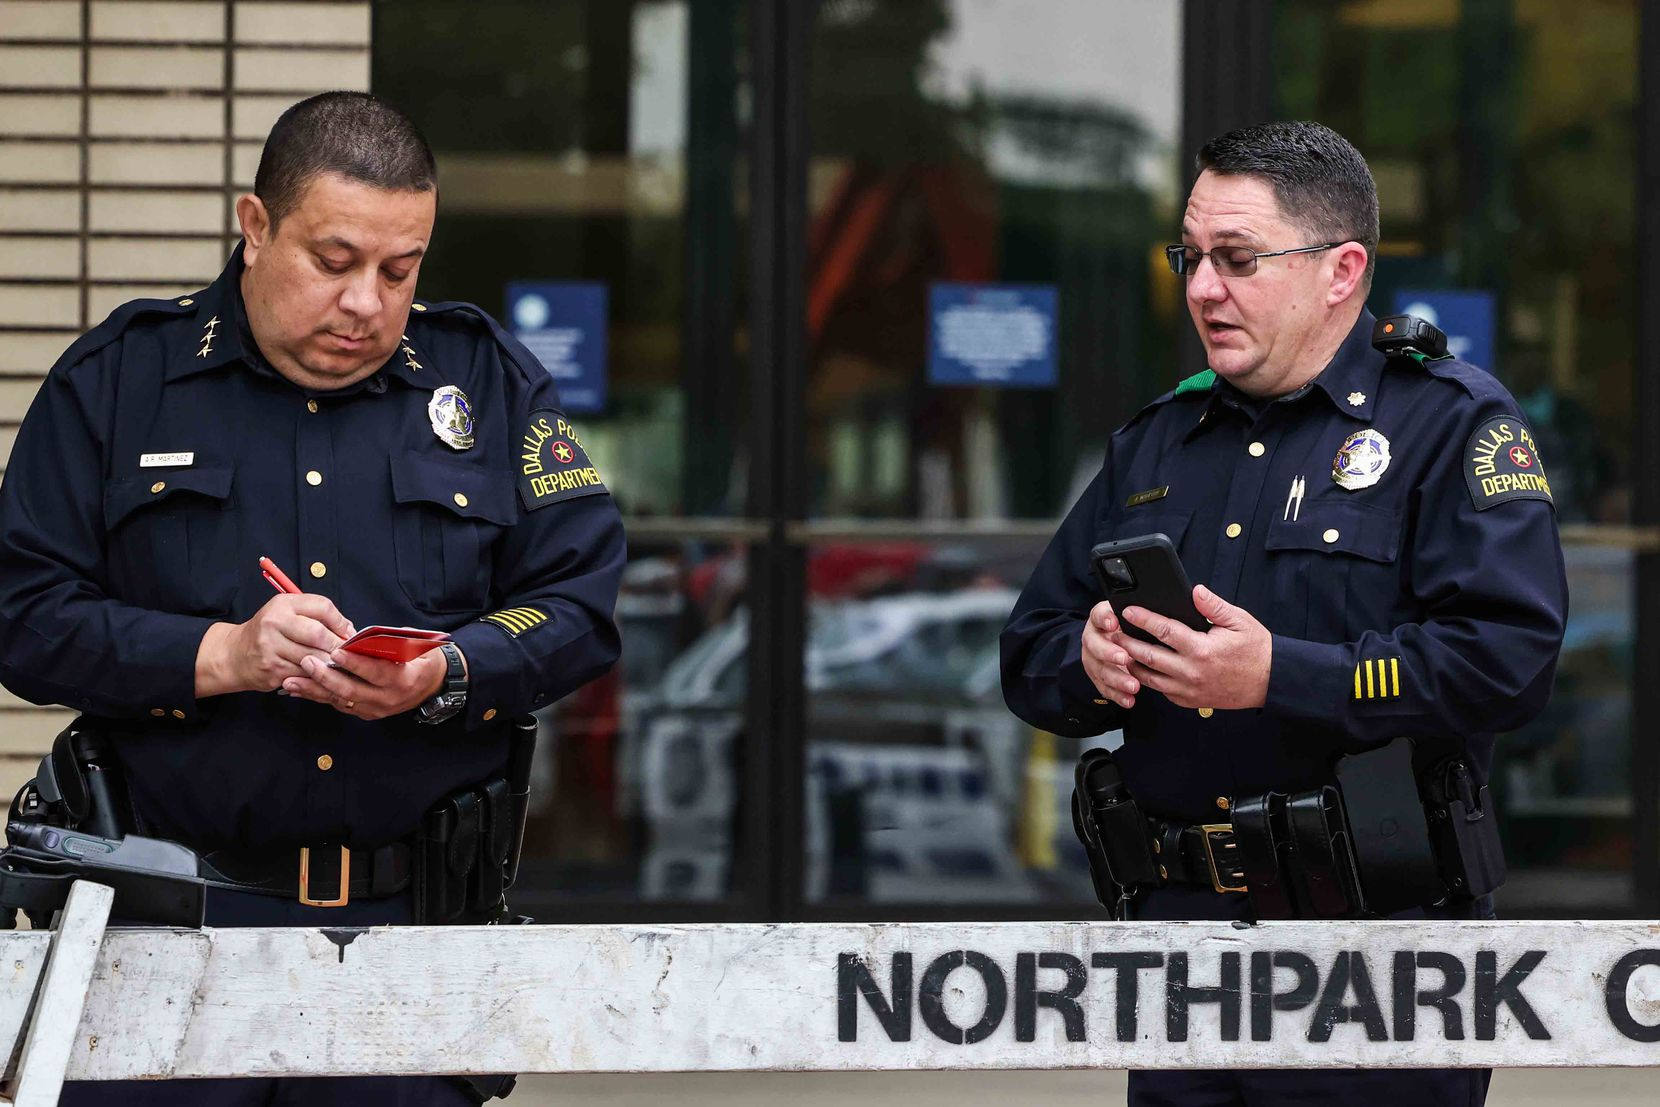 Dallas police officers stand outside the NorthPark Center on Monday.